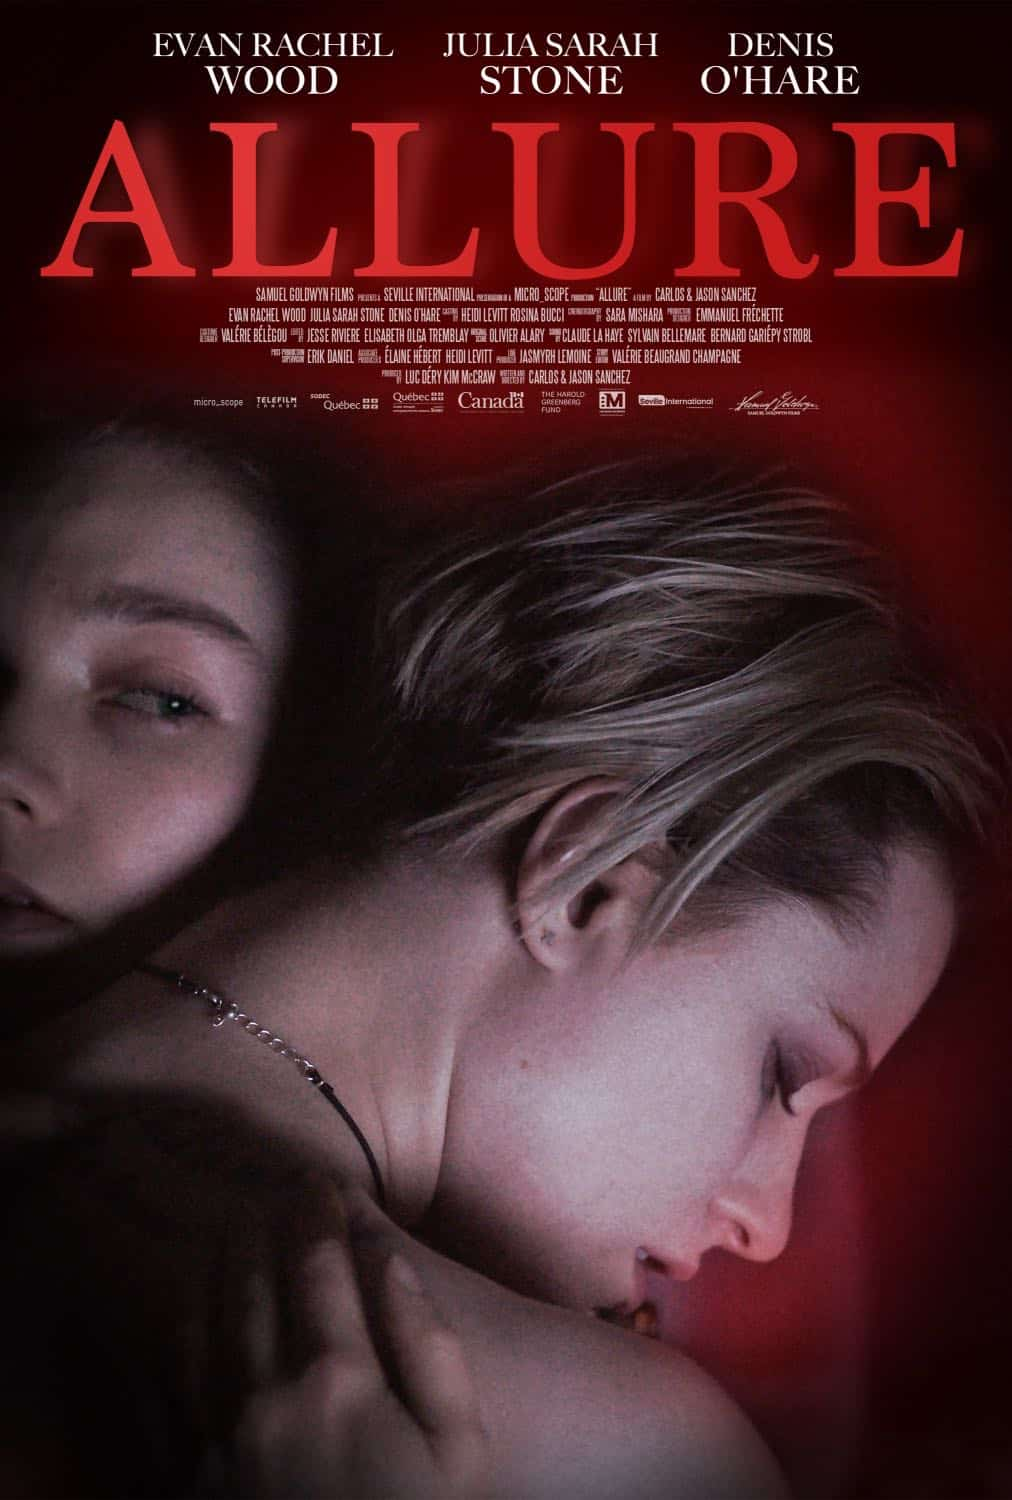 Allure-Movie-Poster